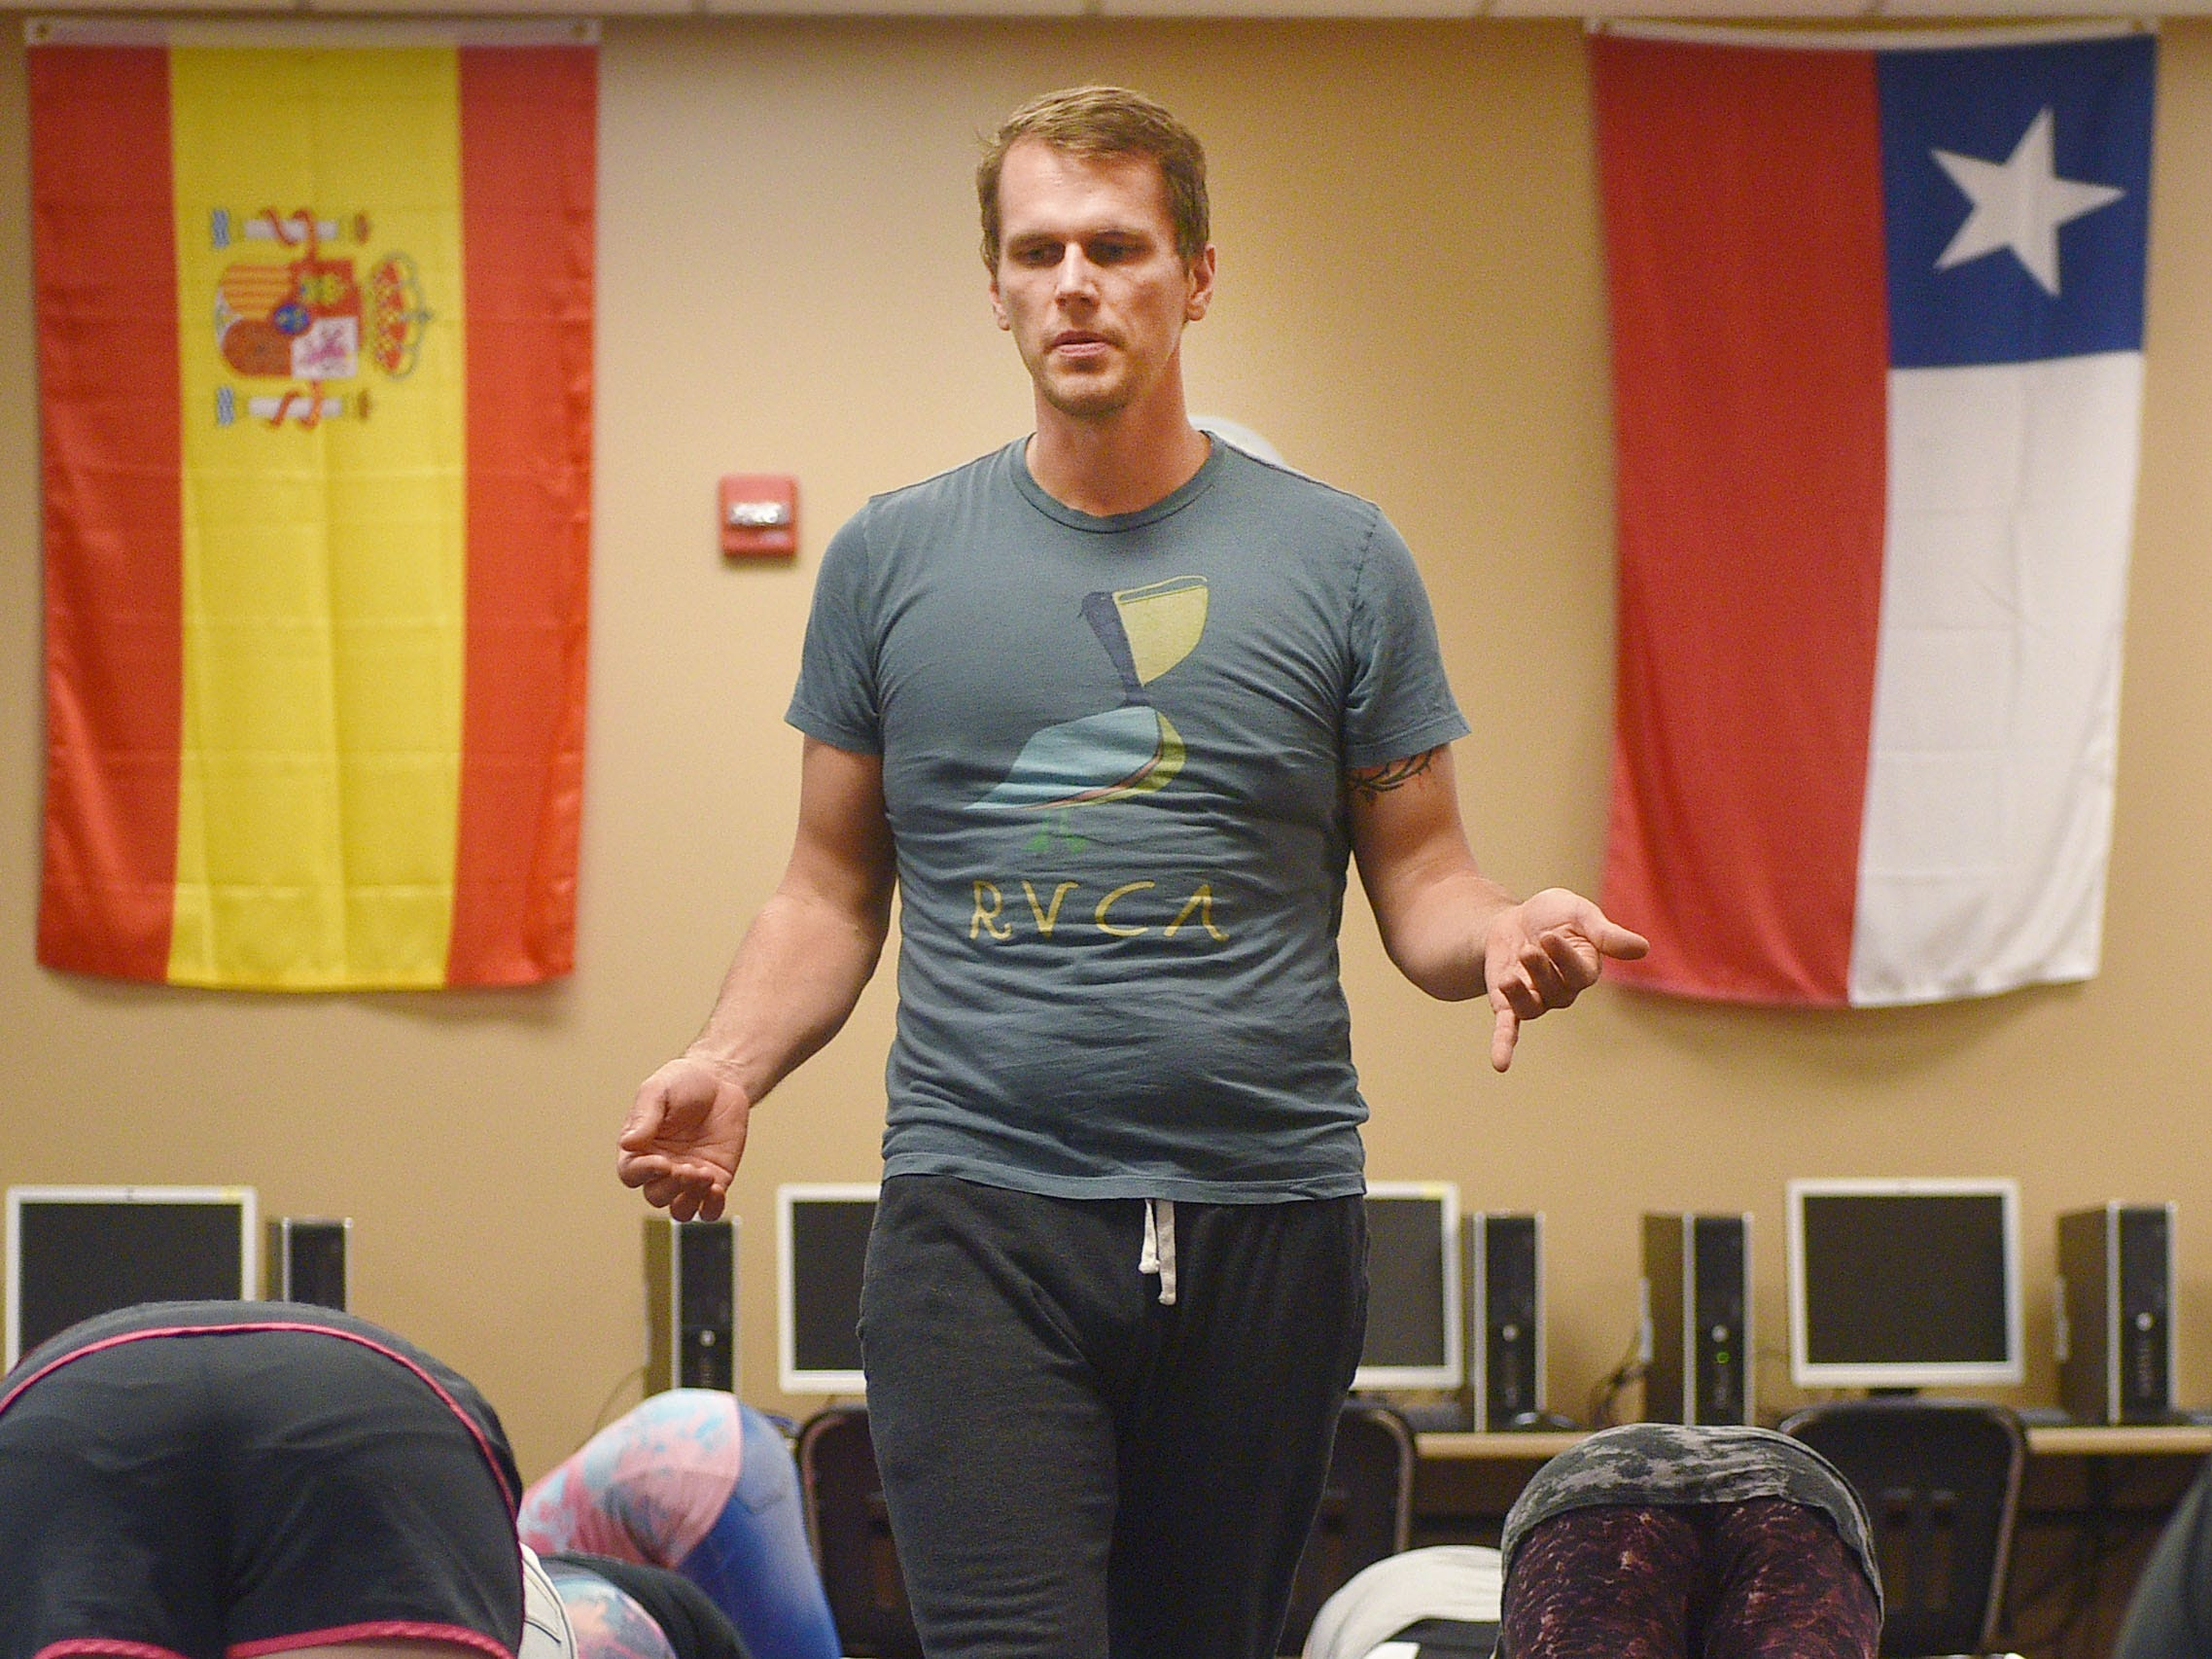 New Tech High School teacher Chris Coughlin instructs a yoga class Tuesday, Aug 28, in Sioux Falls. The class has been added as an extra curricular.